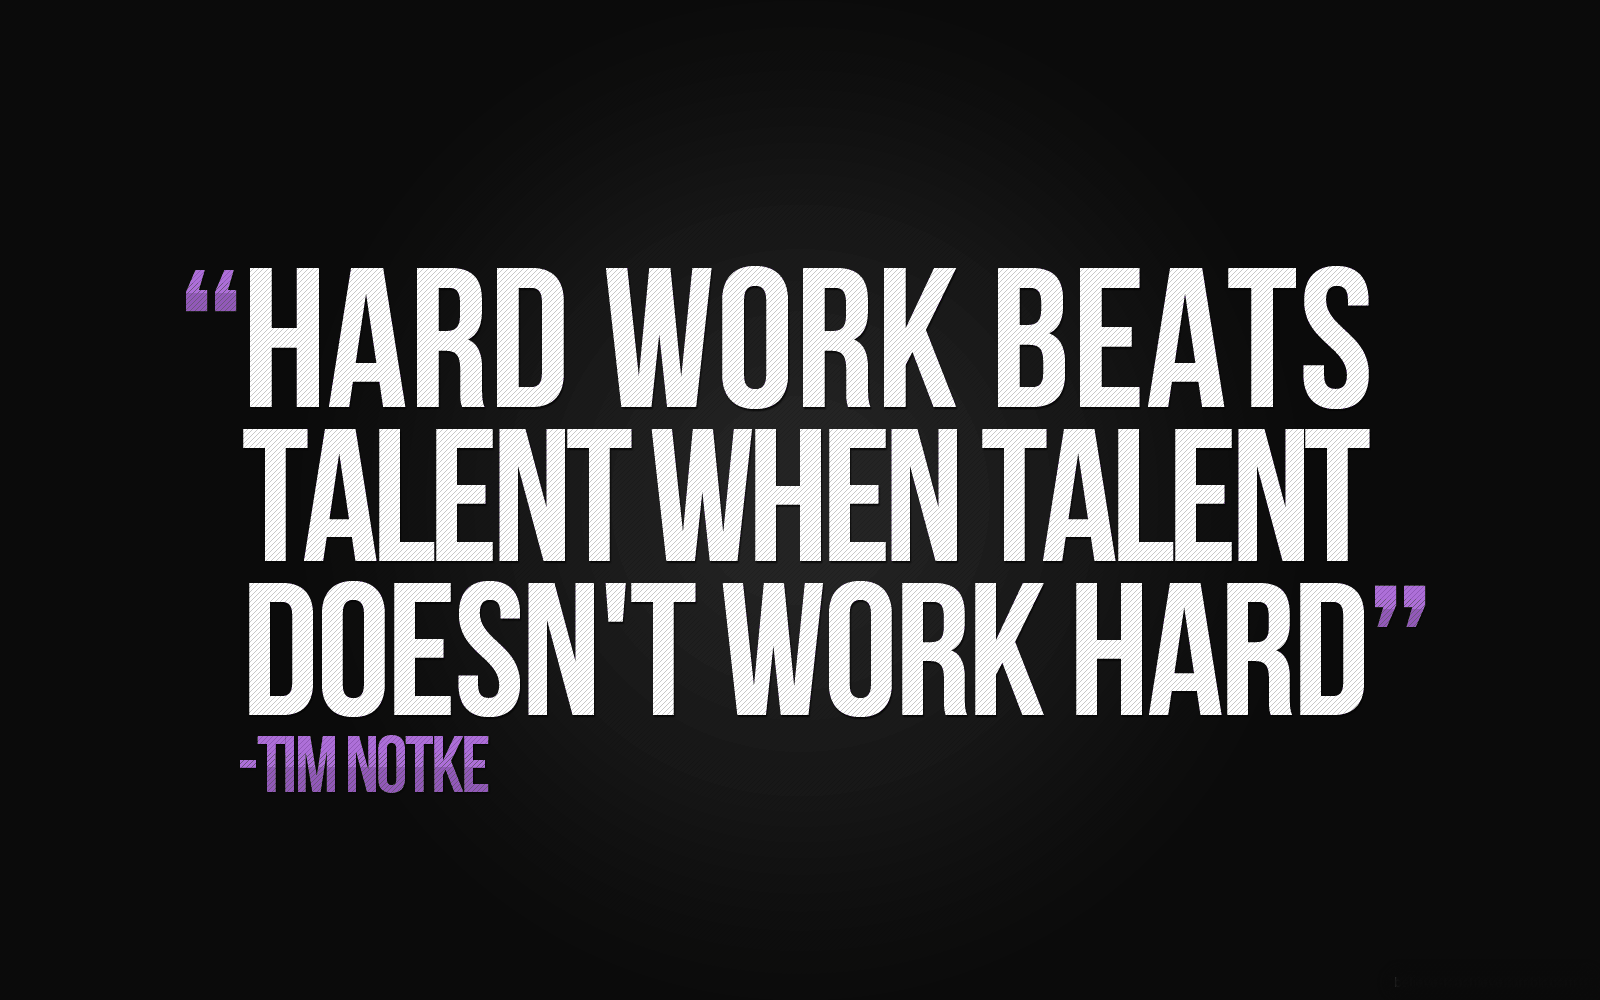 hard work beats talent 10 Habits Of The Highly Successful People